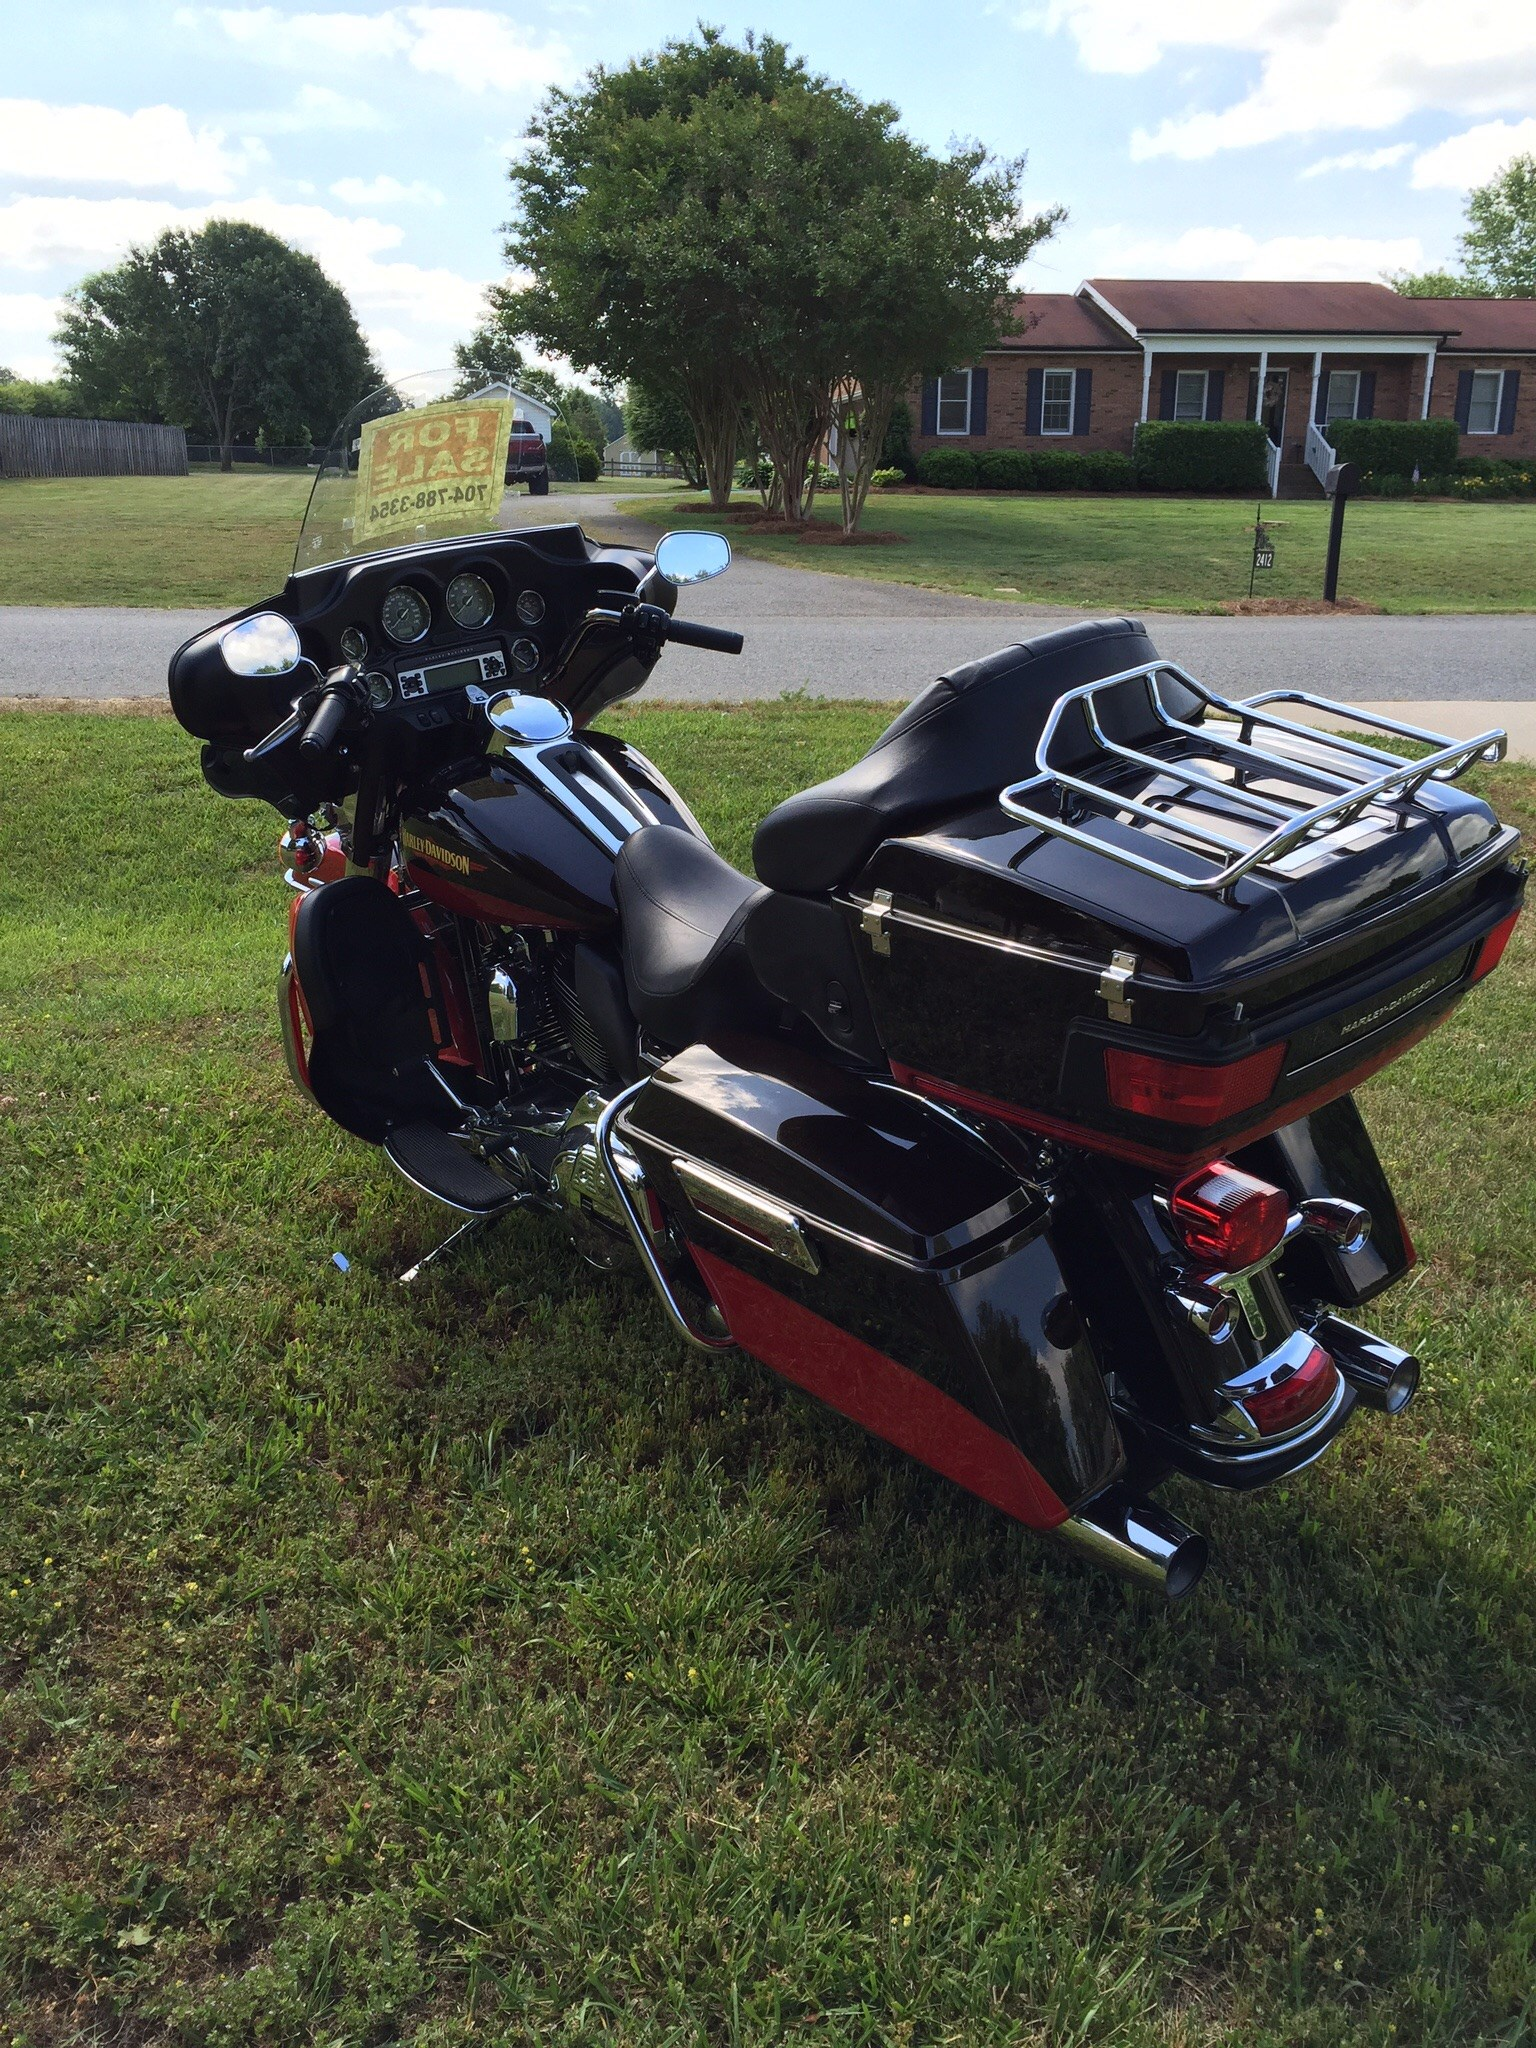 Harley Davidson Touring Motorcycles For Sale Dallas Tx >> 2010 Harley-Davidson® FLHTK Electra Glide® Ultra Limited (Two Tone Merlot Sunglow / Cherry Red ...